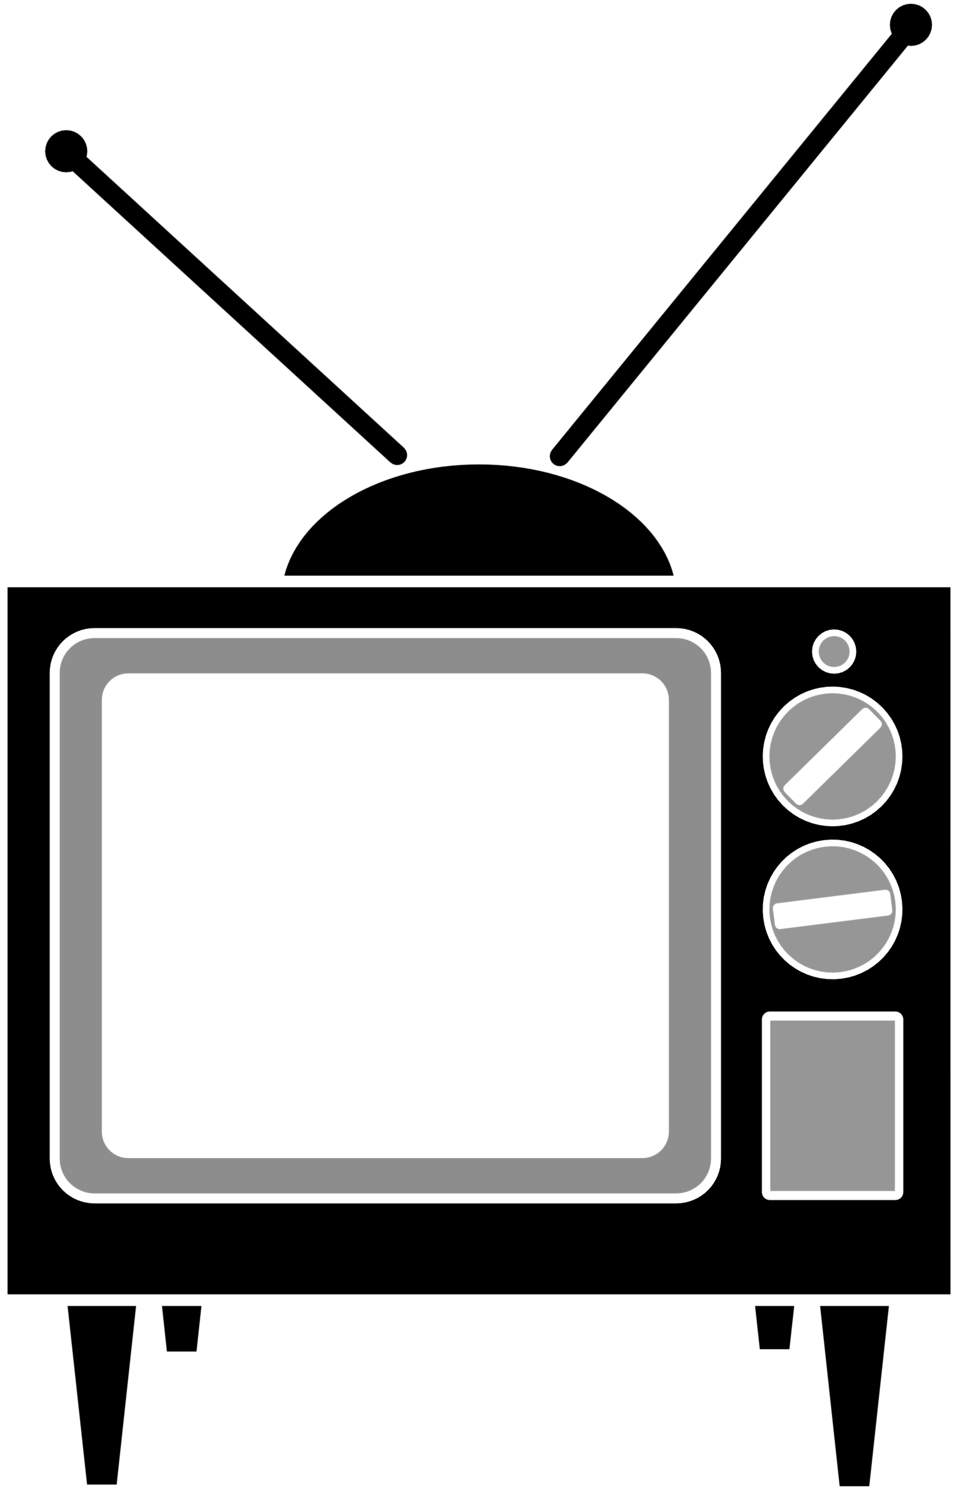 simple television